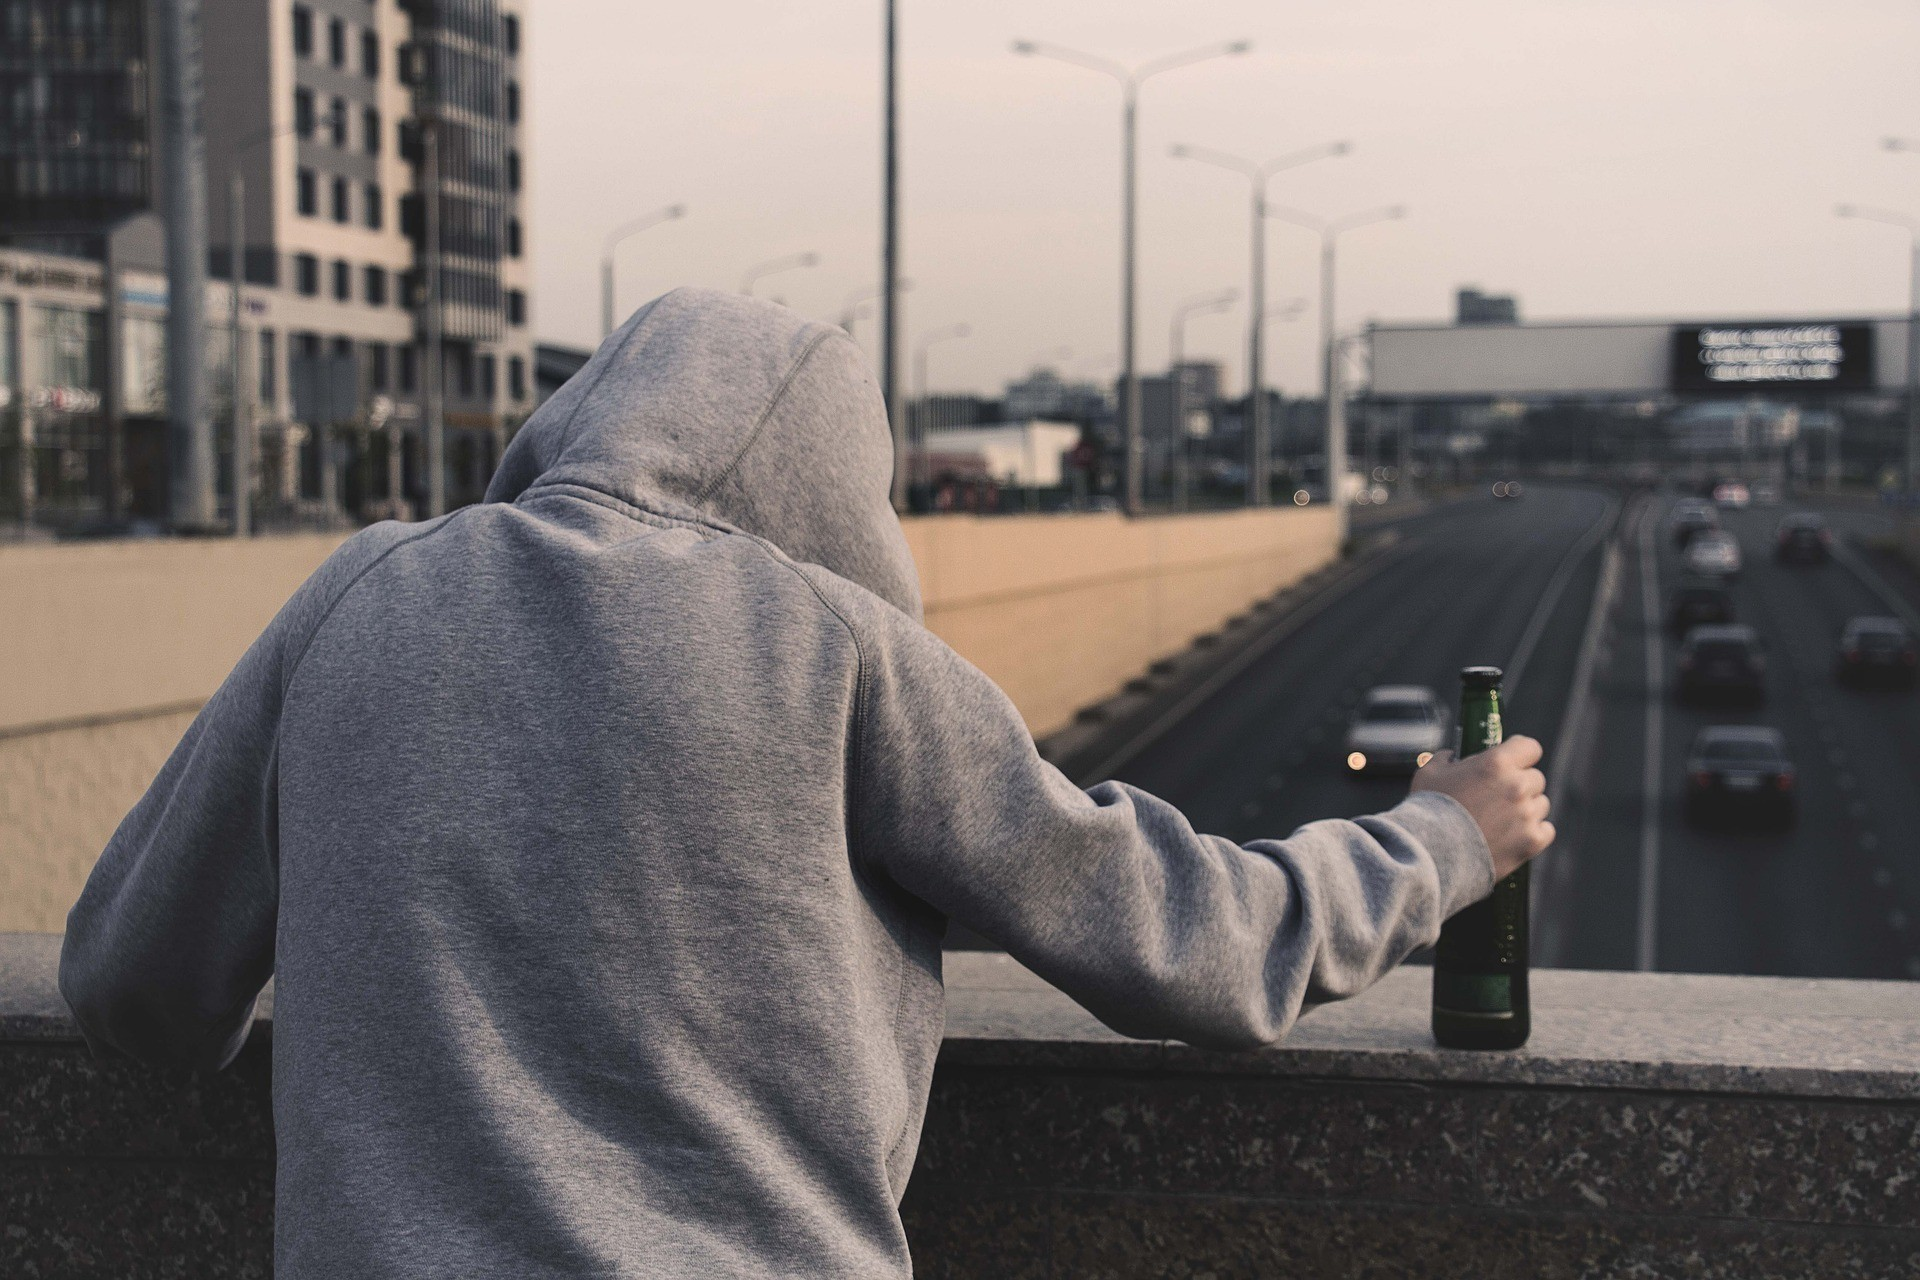 substance-abuse-hoodie-with-bottle-on-bridge